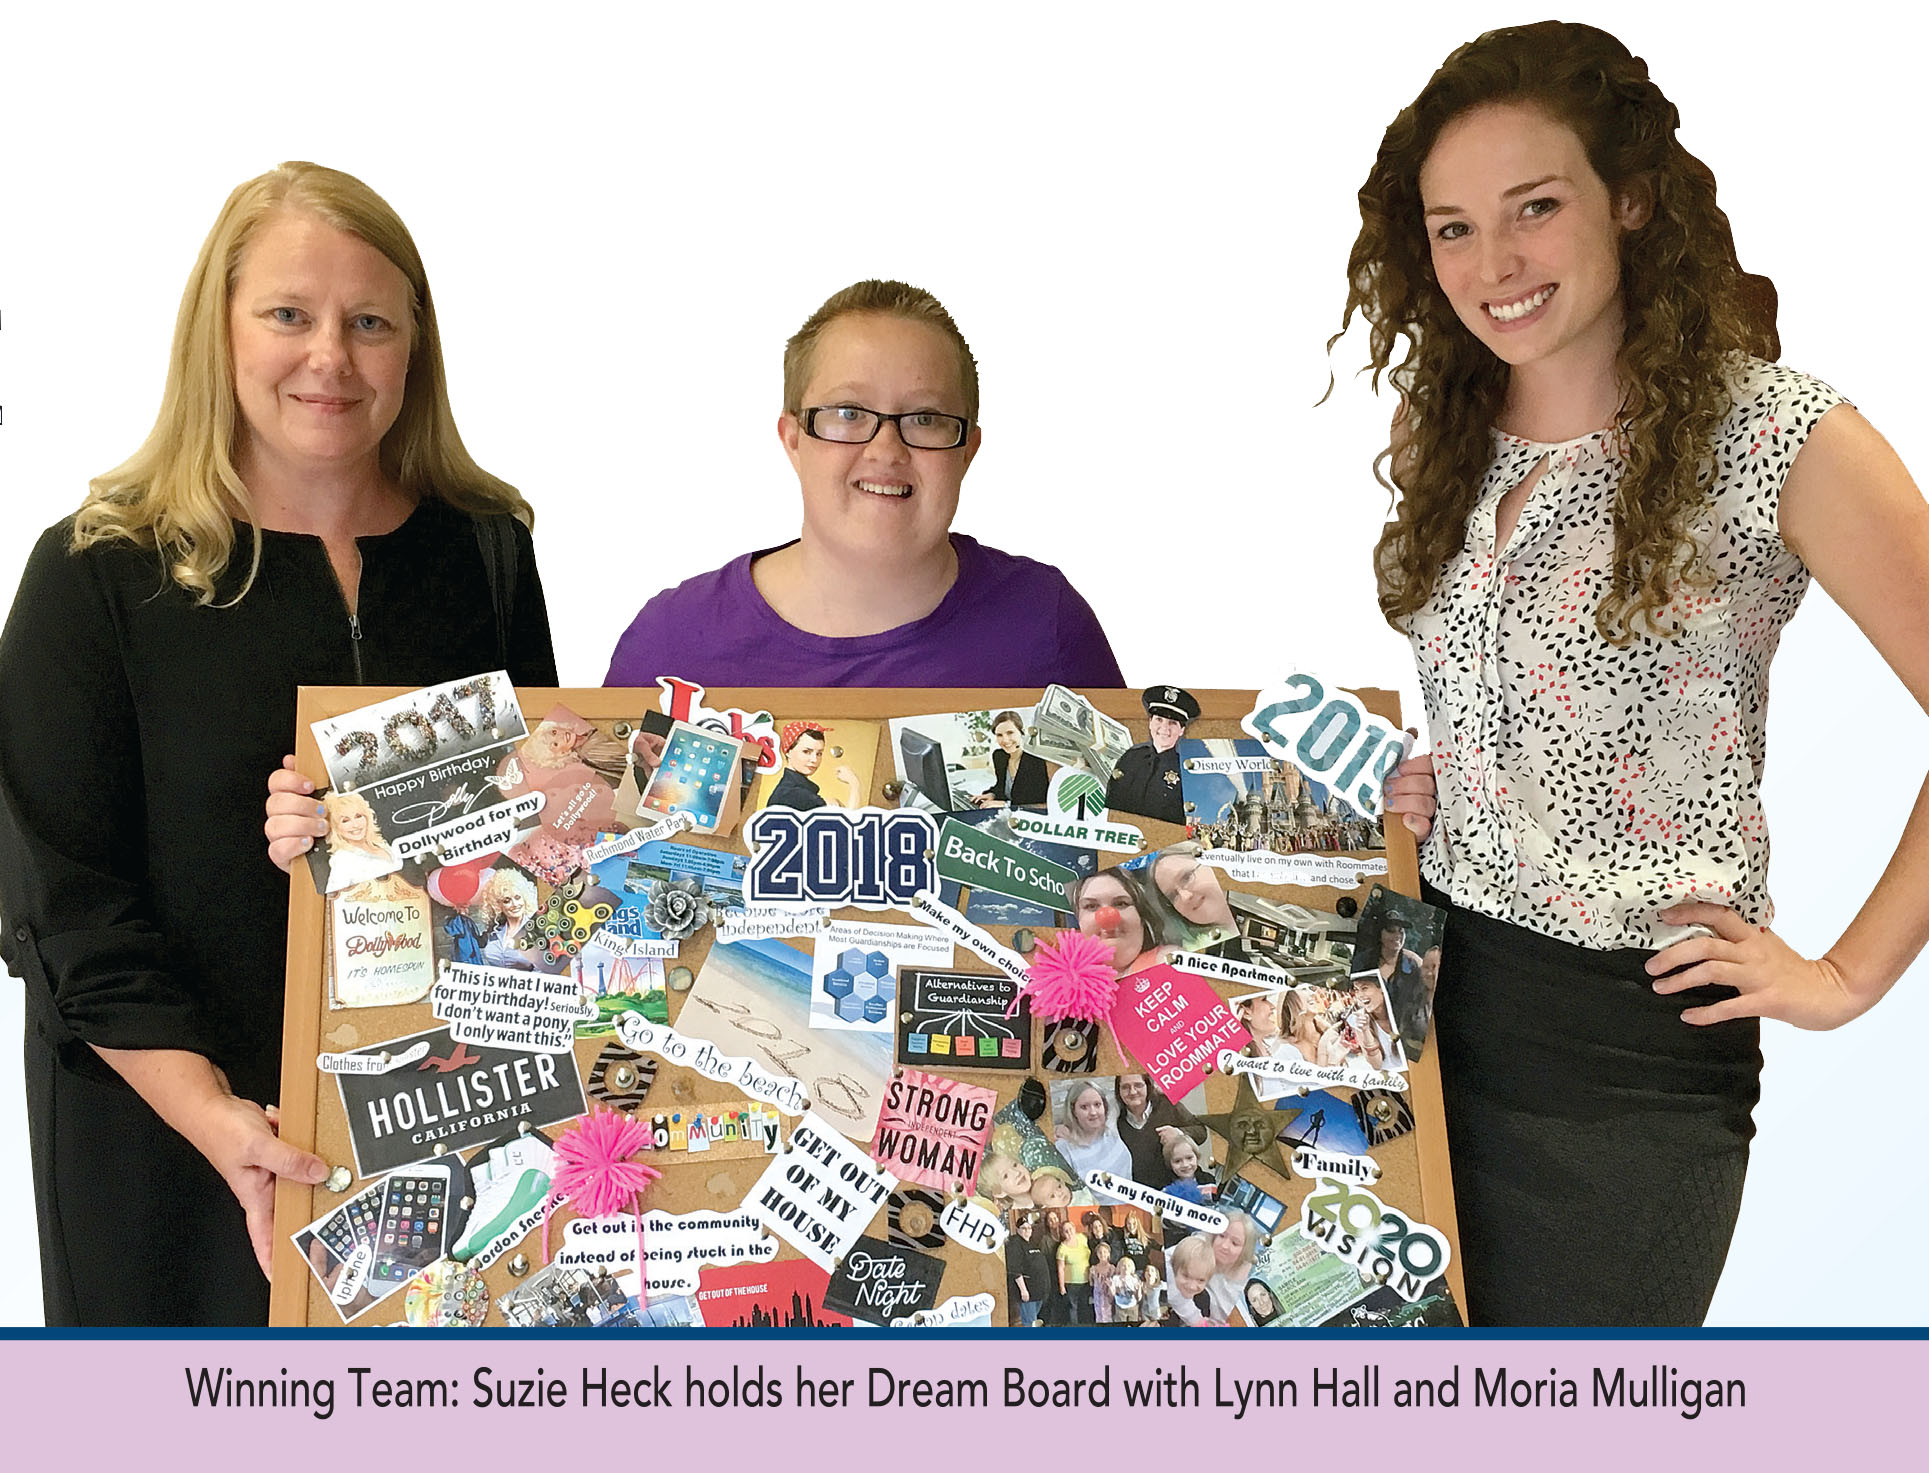 Suzie Heck holds her dream board with Lynn Hall and Moria Mulligan